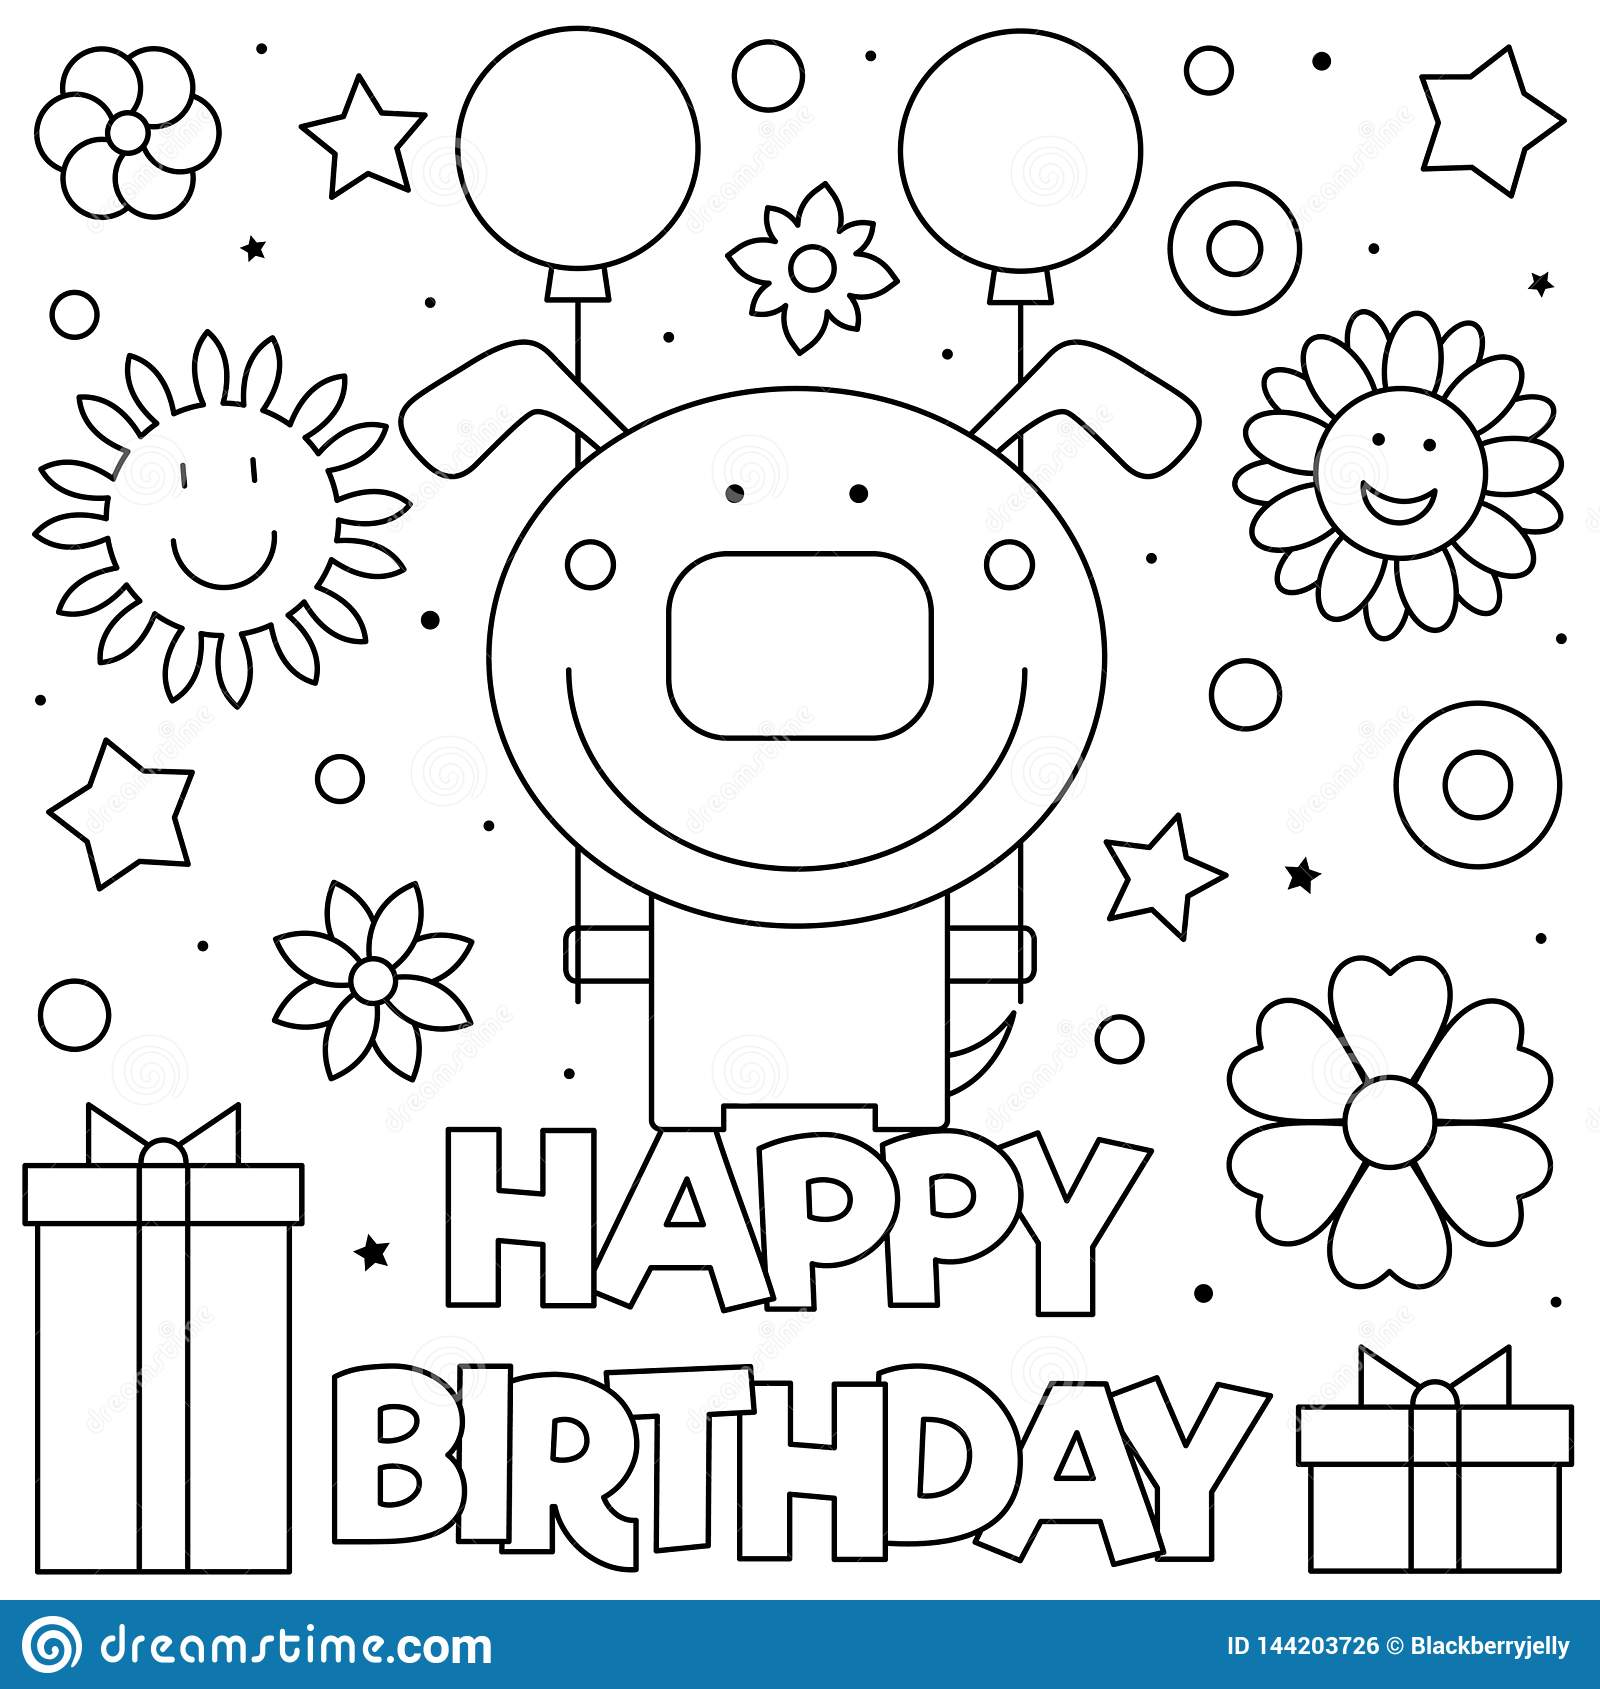 Happy Birthday Coloring Coloringnori Coloring Pages For Kids